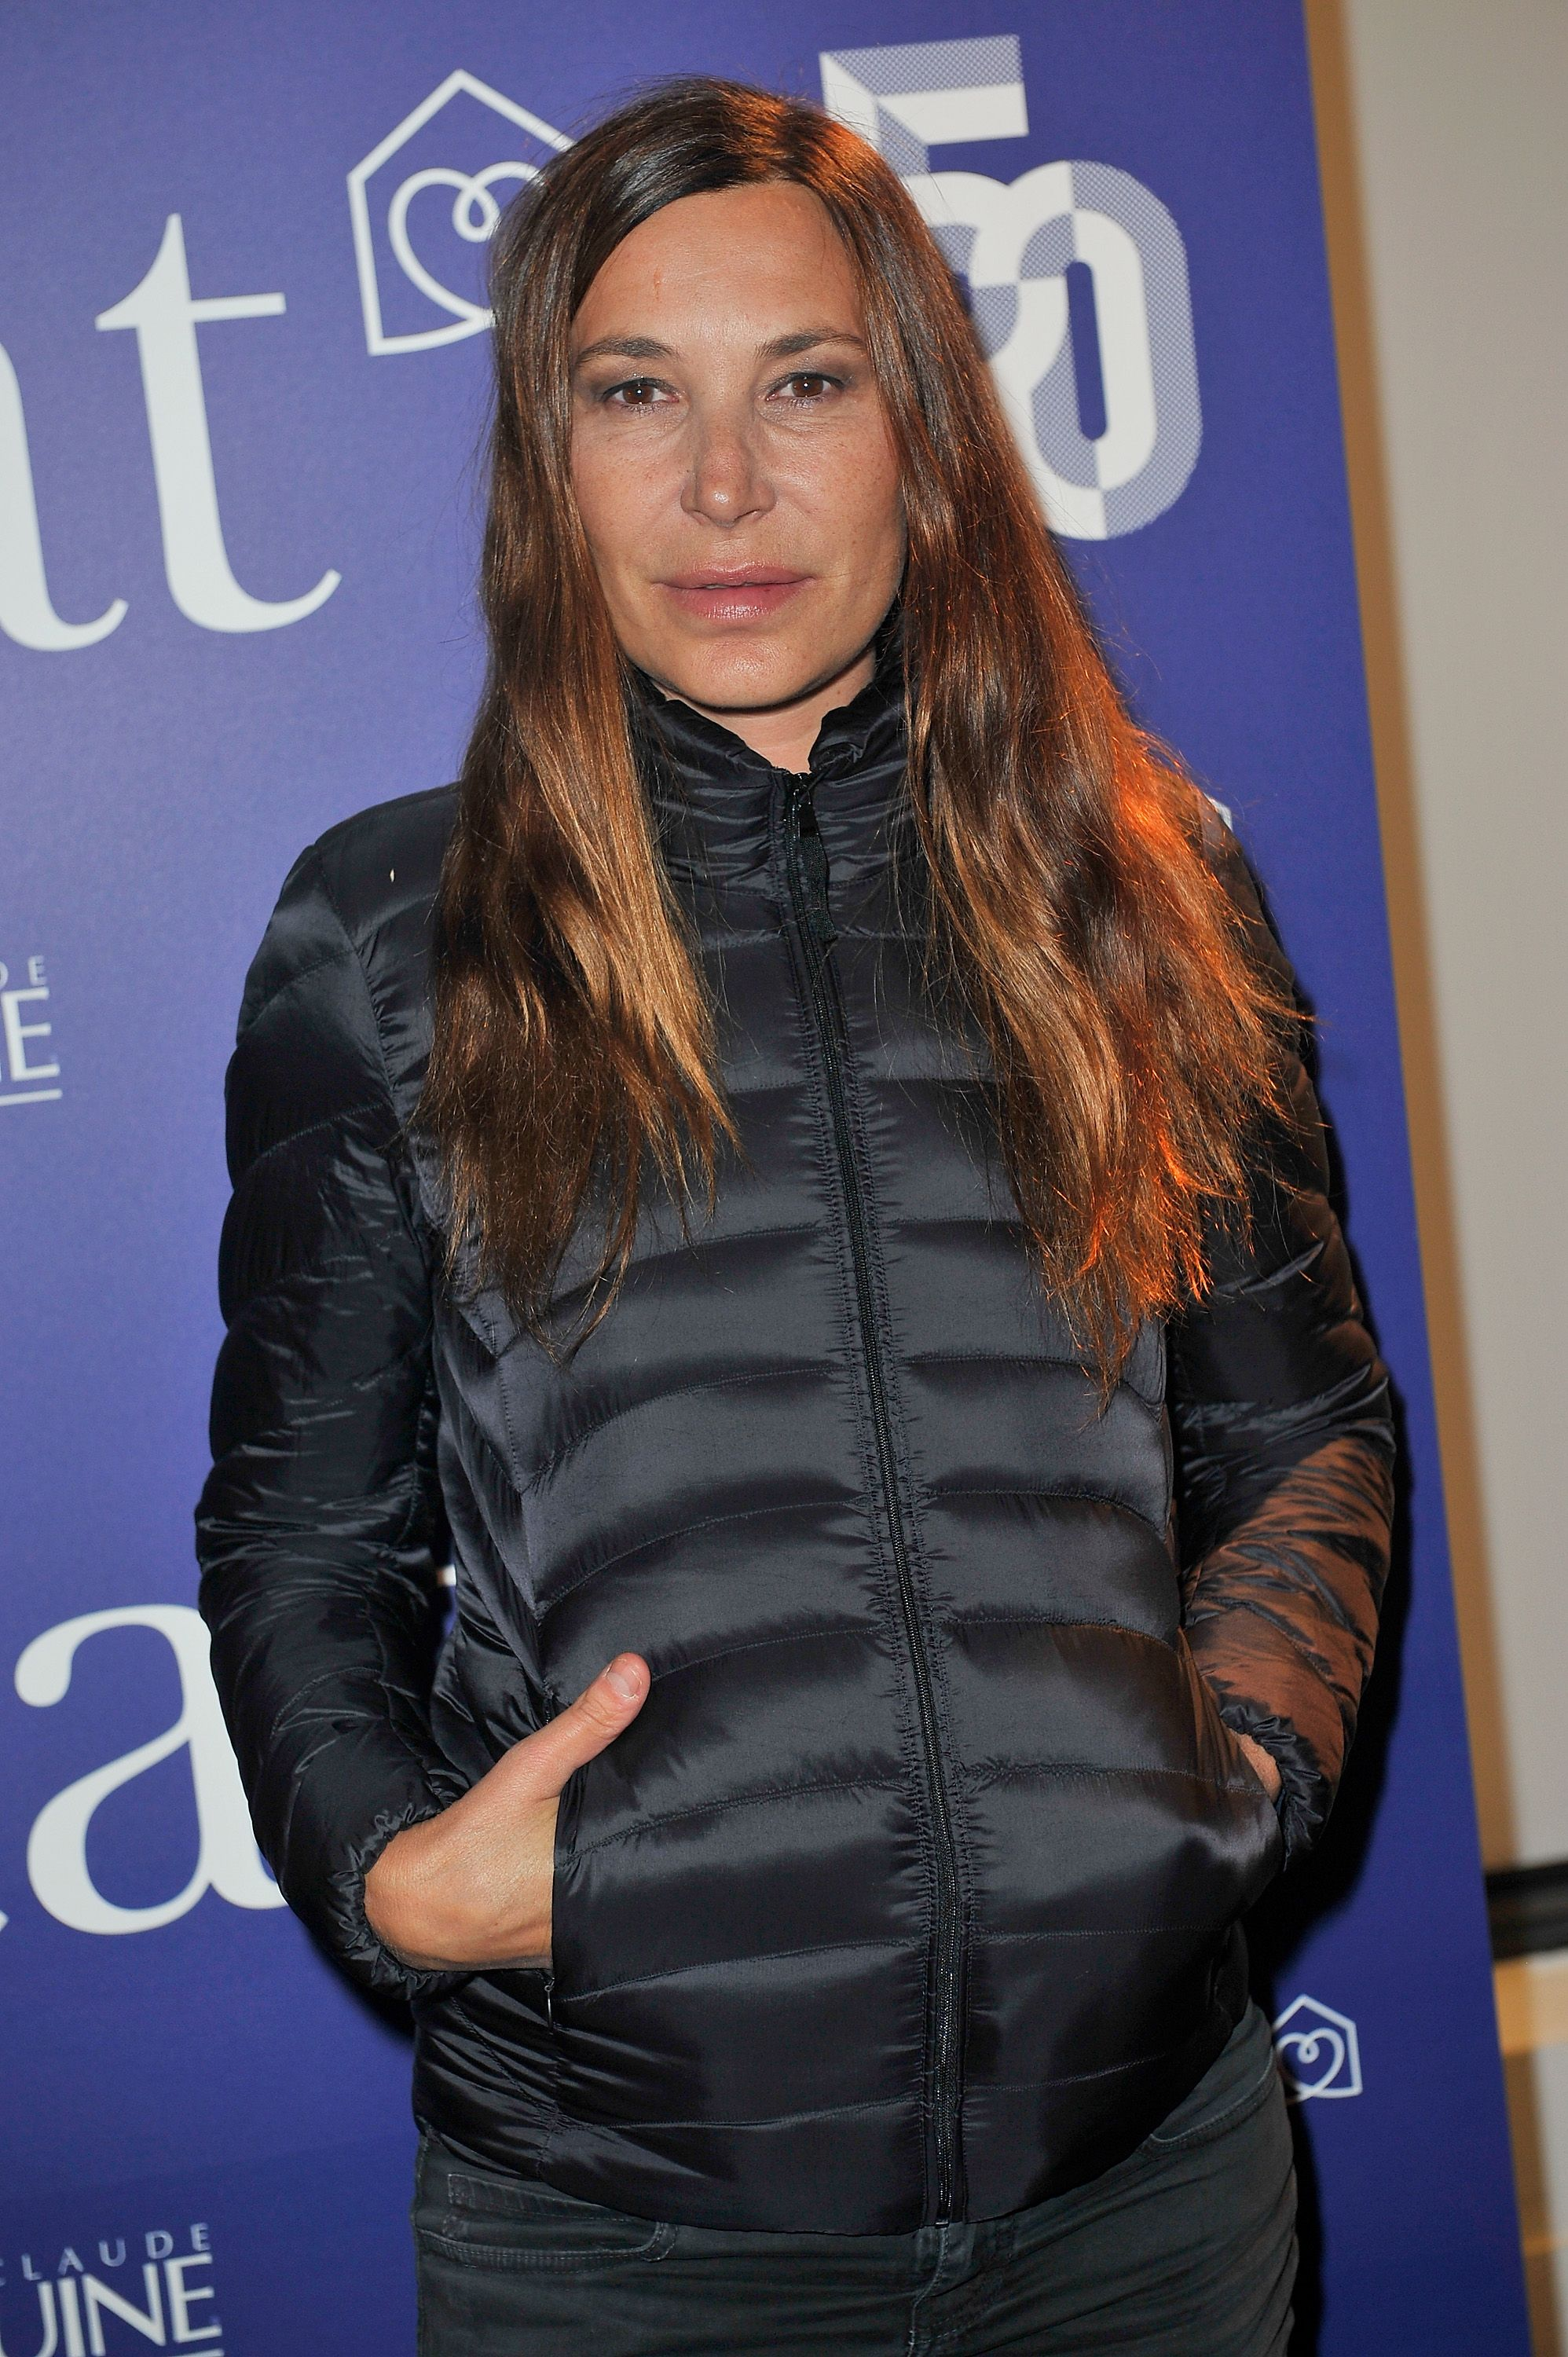 Zazie assiste à la célébration du 50e anniversaire d'Habitat à Paris, France. | Photo : Getty Images